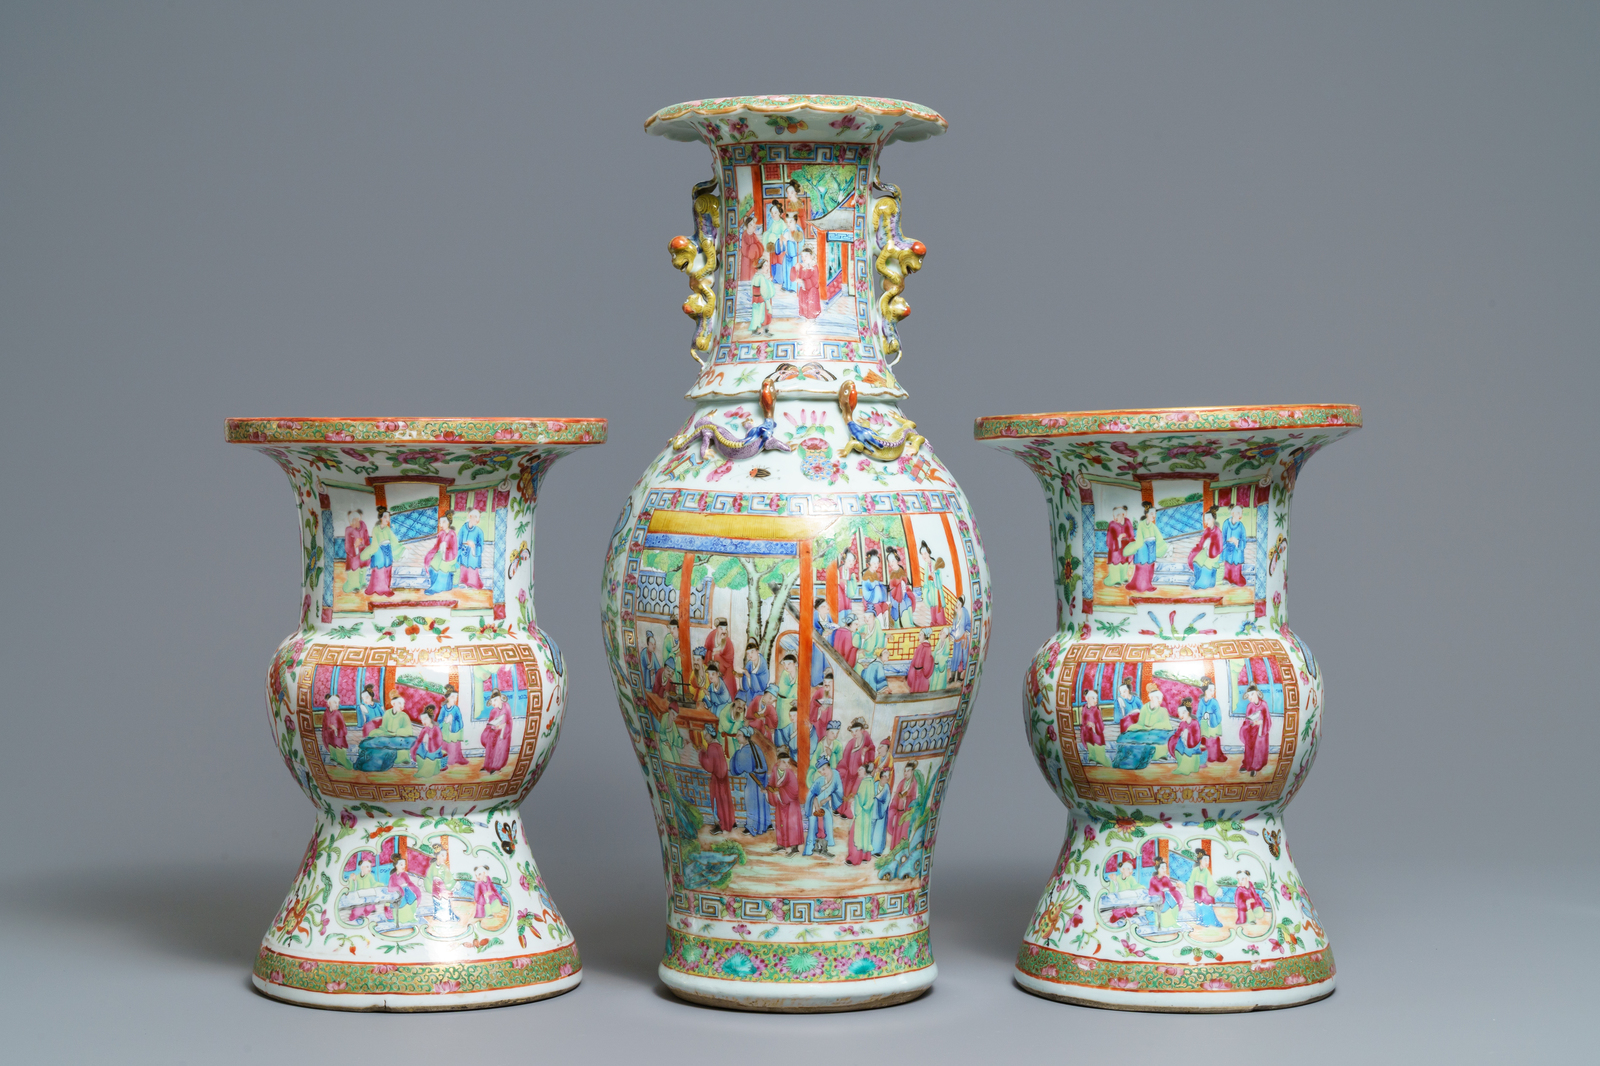 A pair of Chinese Canton famille rose spittoons and a vase, 19th C. - Image 3 of 6